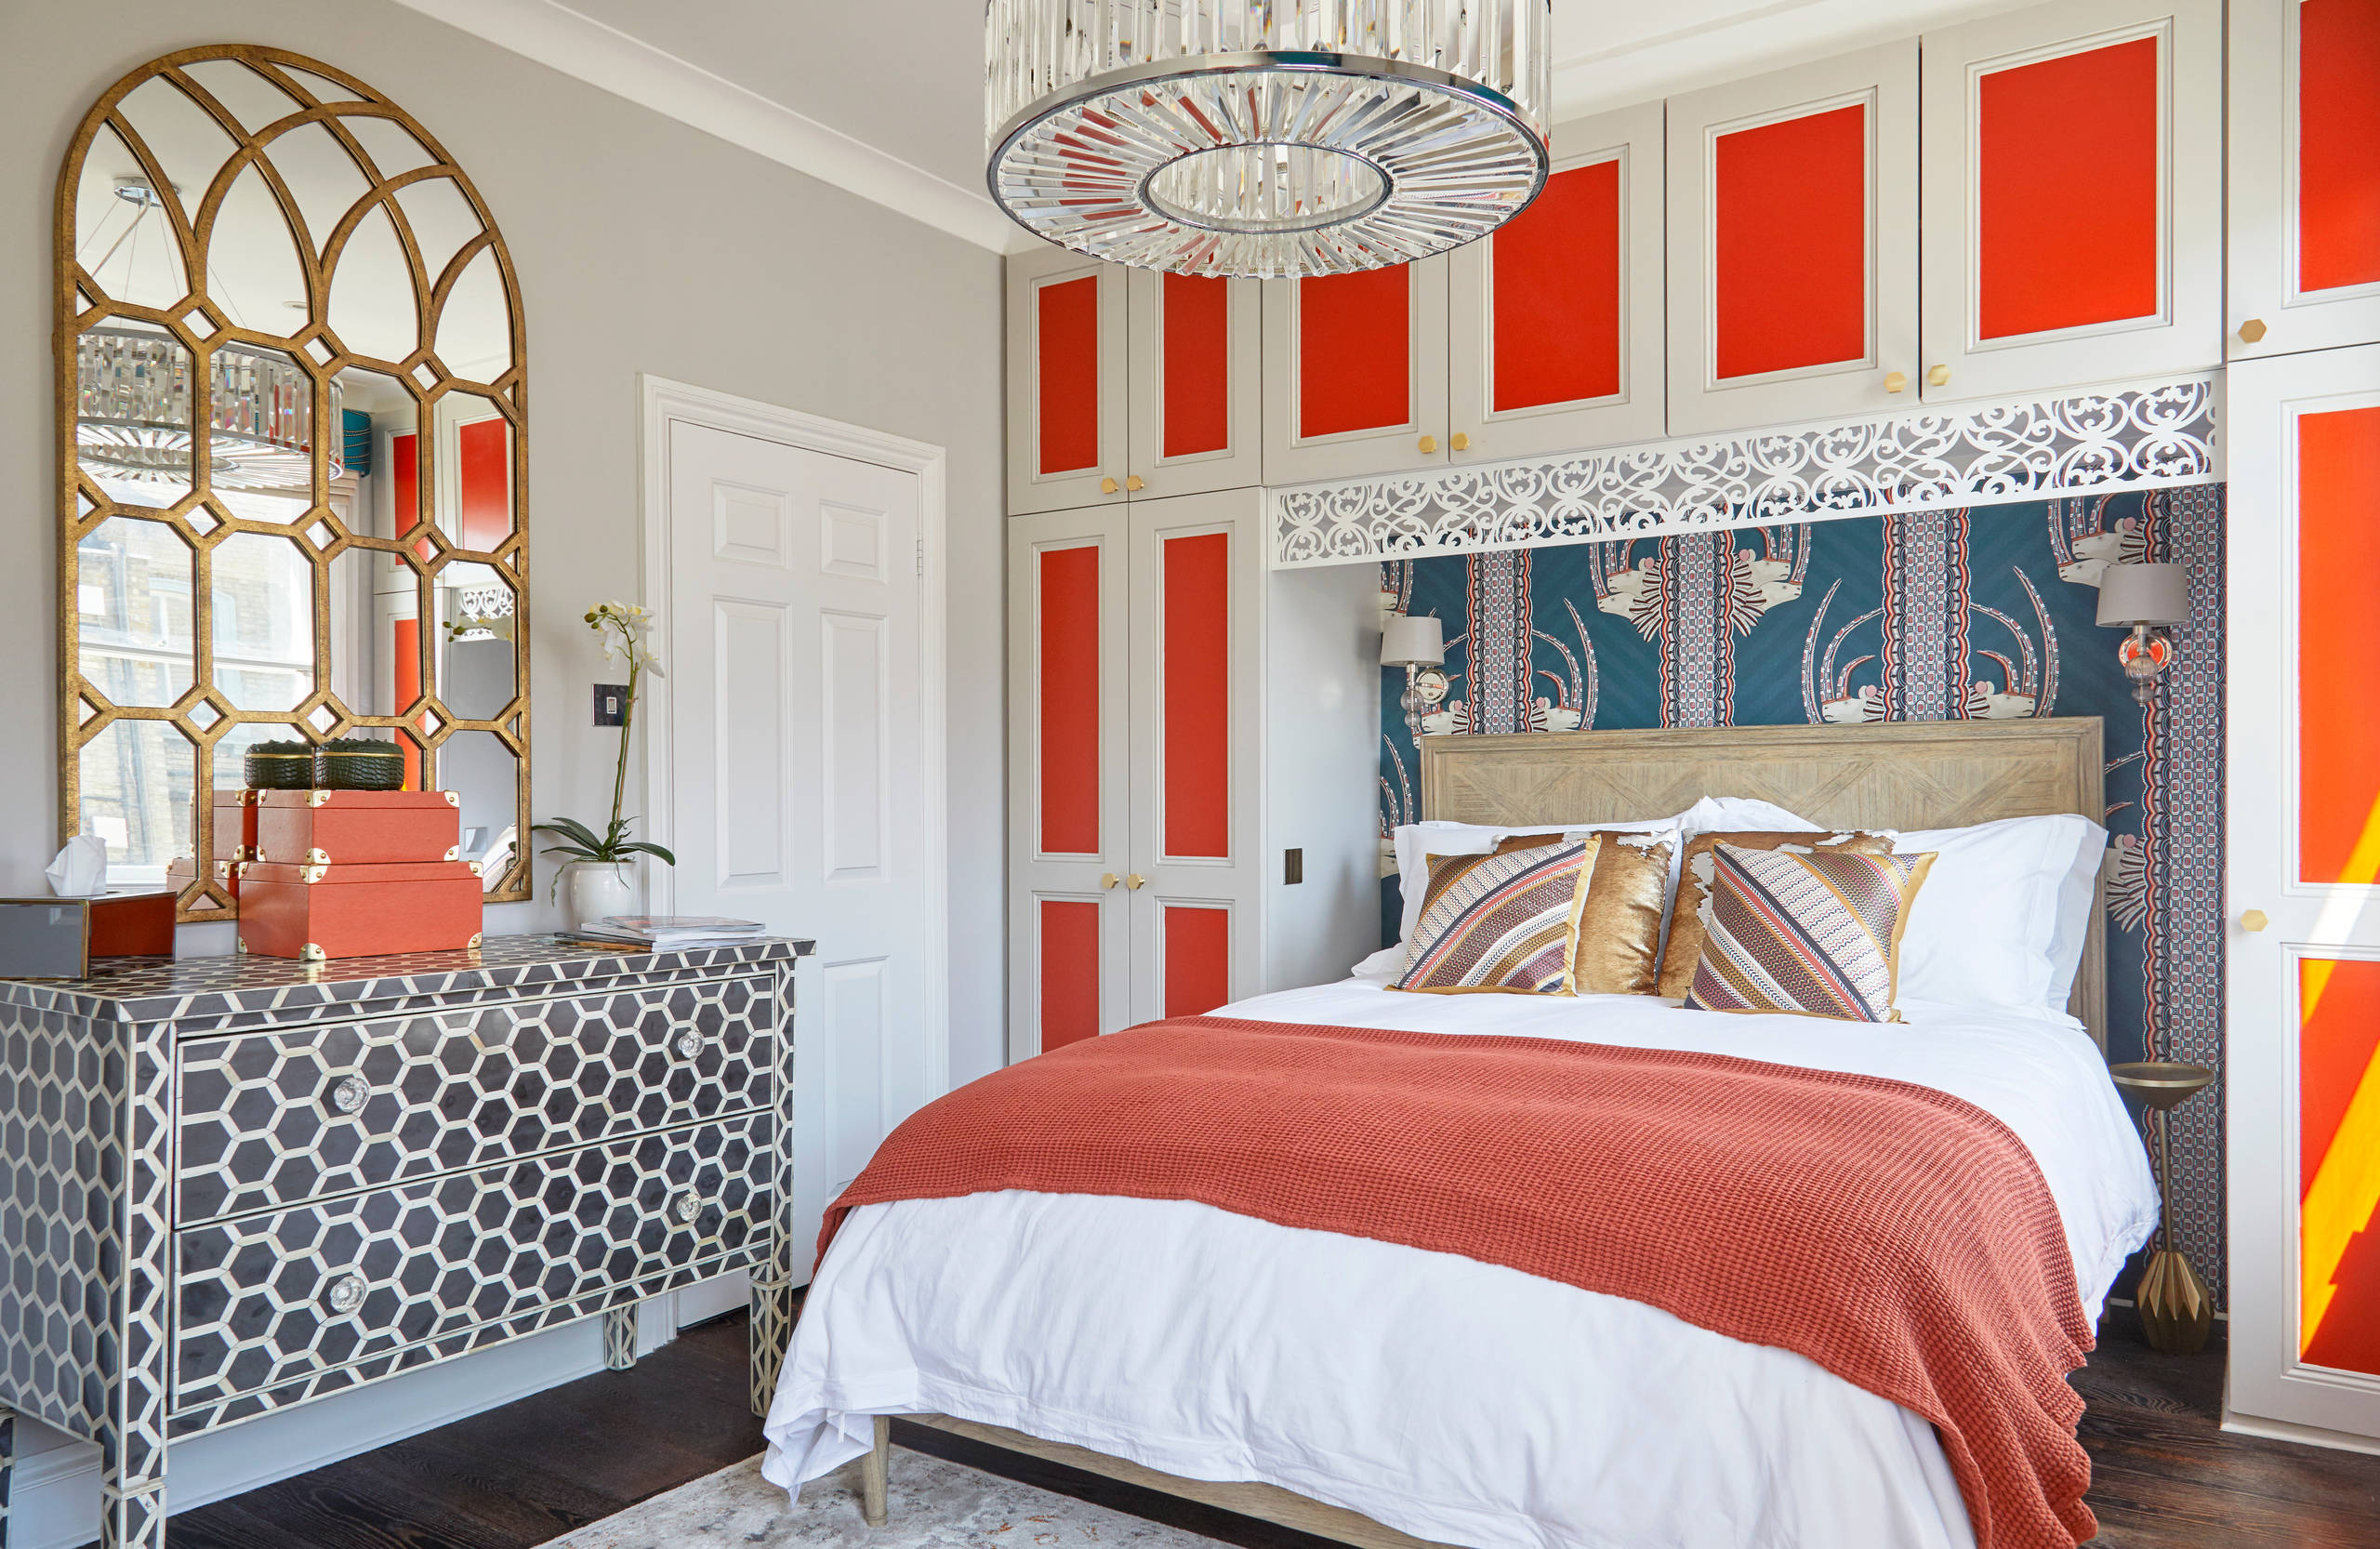 75 Beautiful Red Dark Wood Floor Bedroom Pictures & Ideas - November, 2020  | Houzz